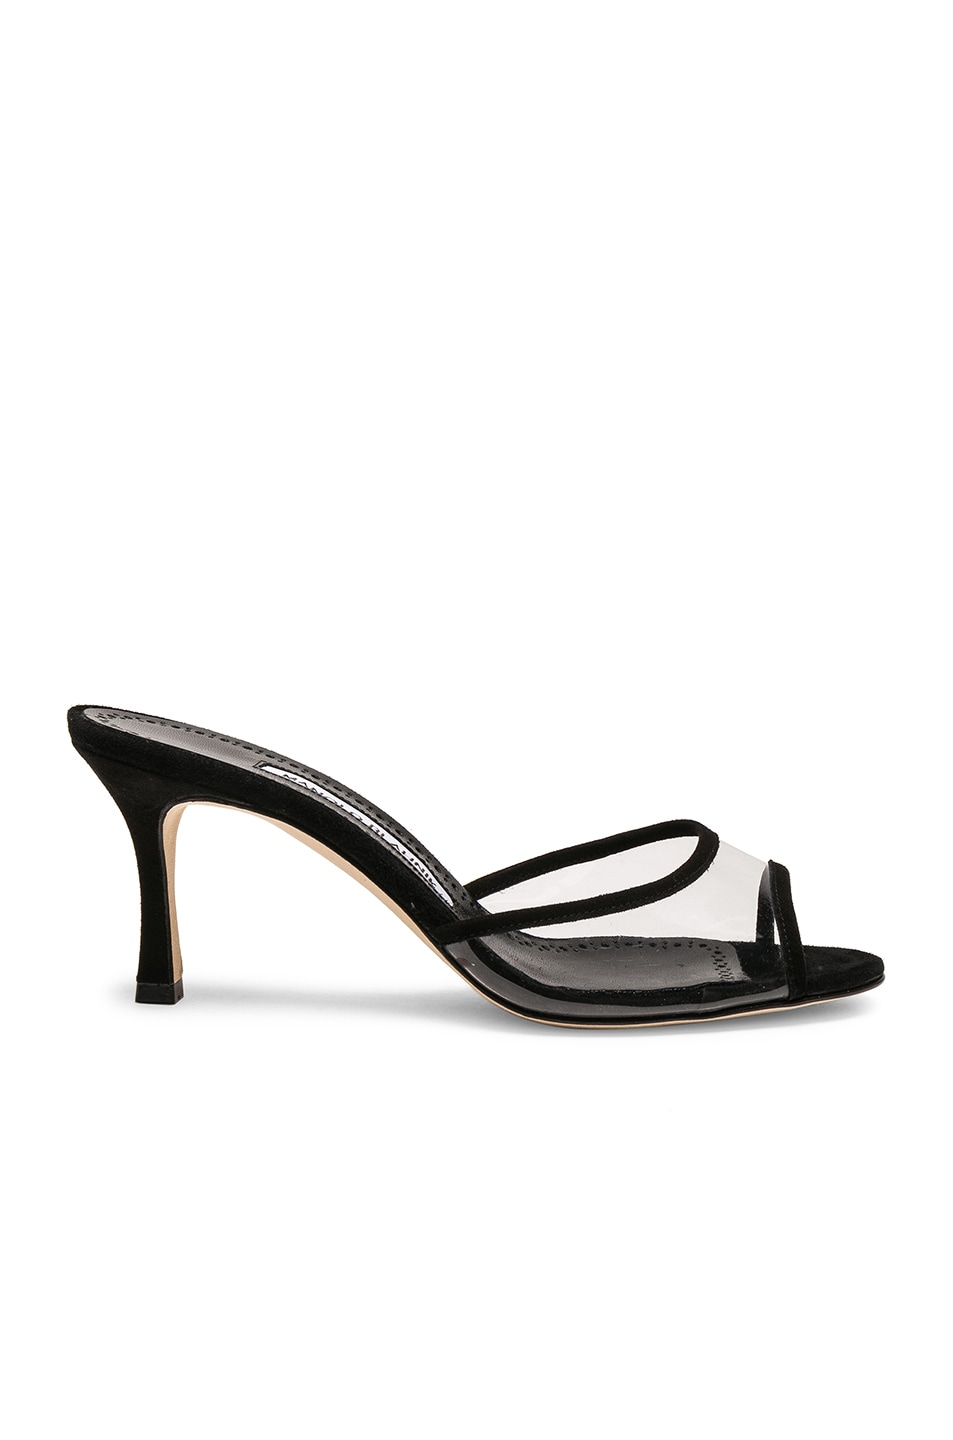 Manolo Blahnik PVC Sissavy Sandals in .